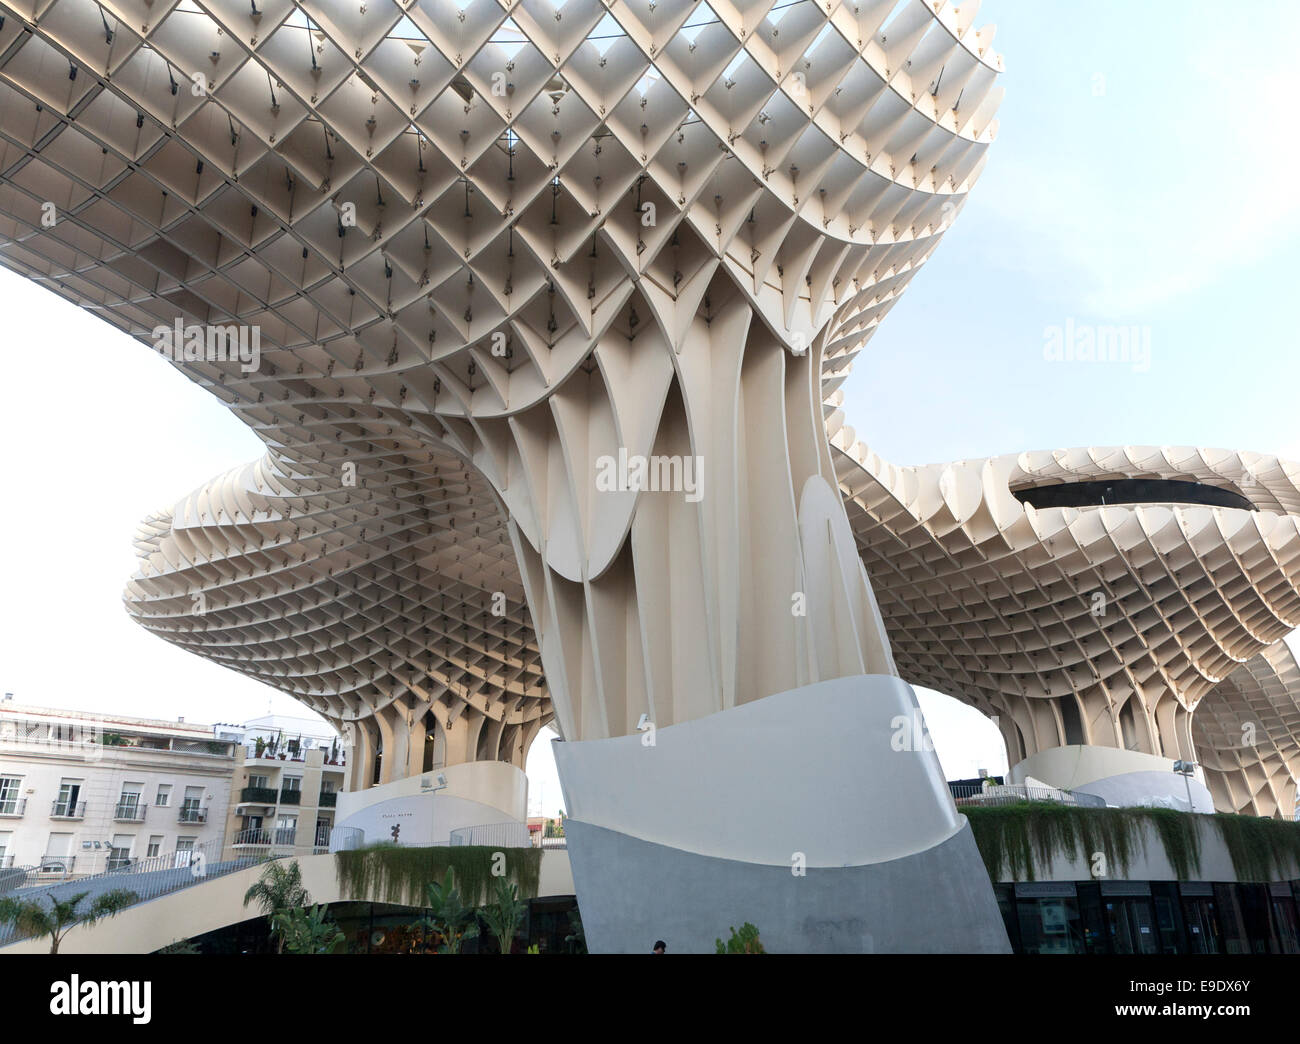 Metropol parasol the world s largest wooden structure - Metropol Parasol Wooden Structure In Plaza La Encarnaci N Seville Spain Architect J Rgen Mayer Hermann Completed 2011